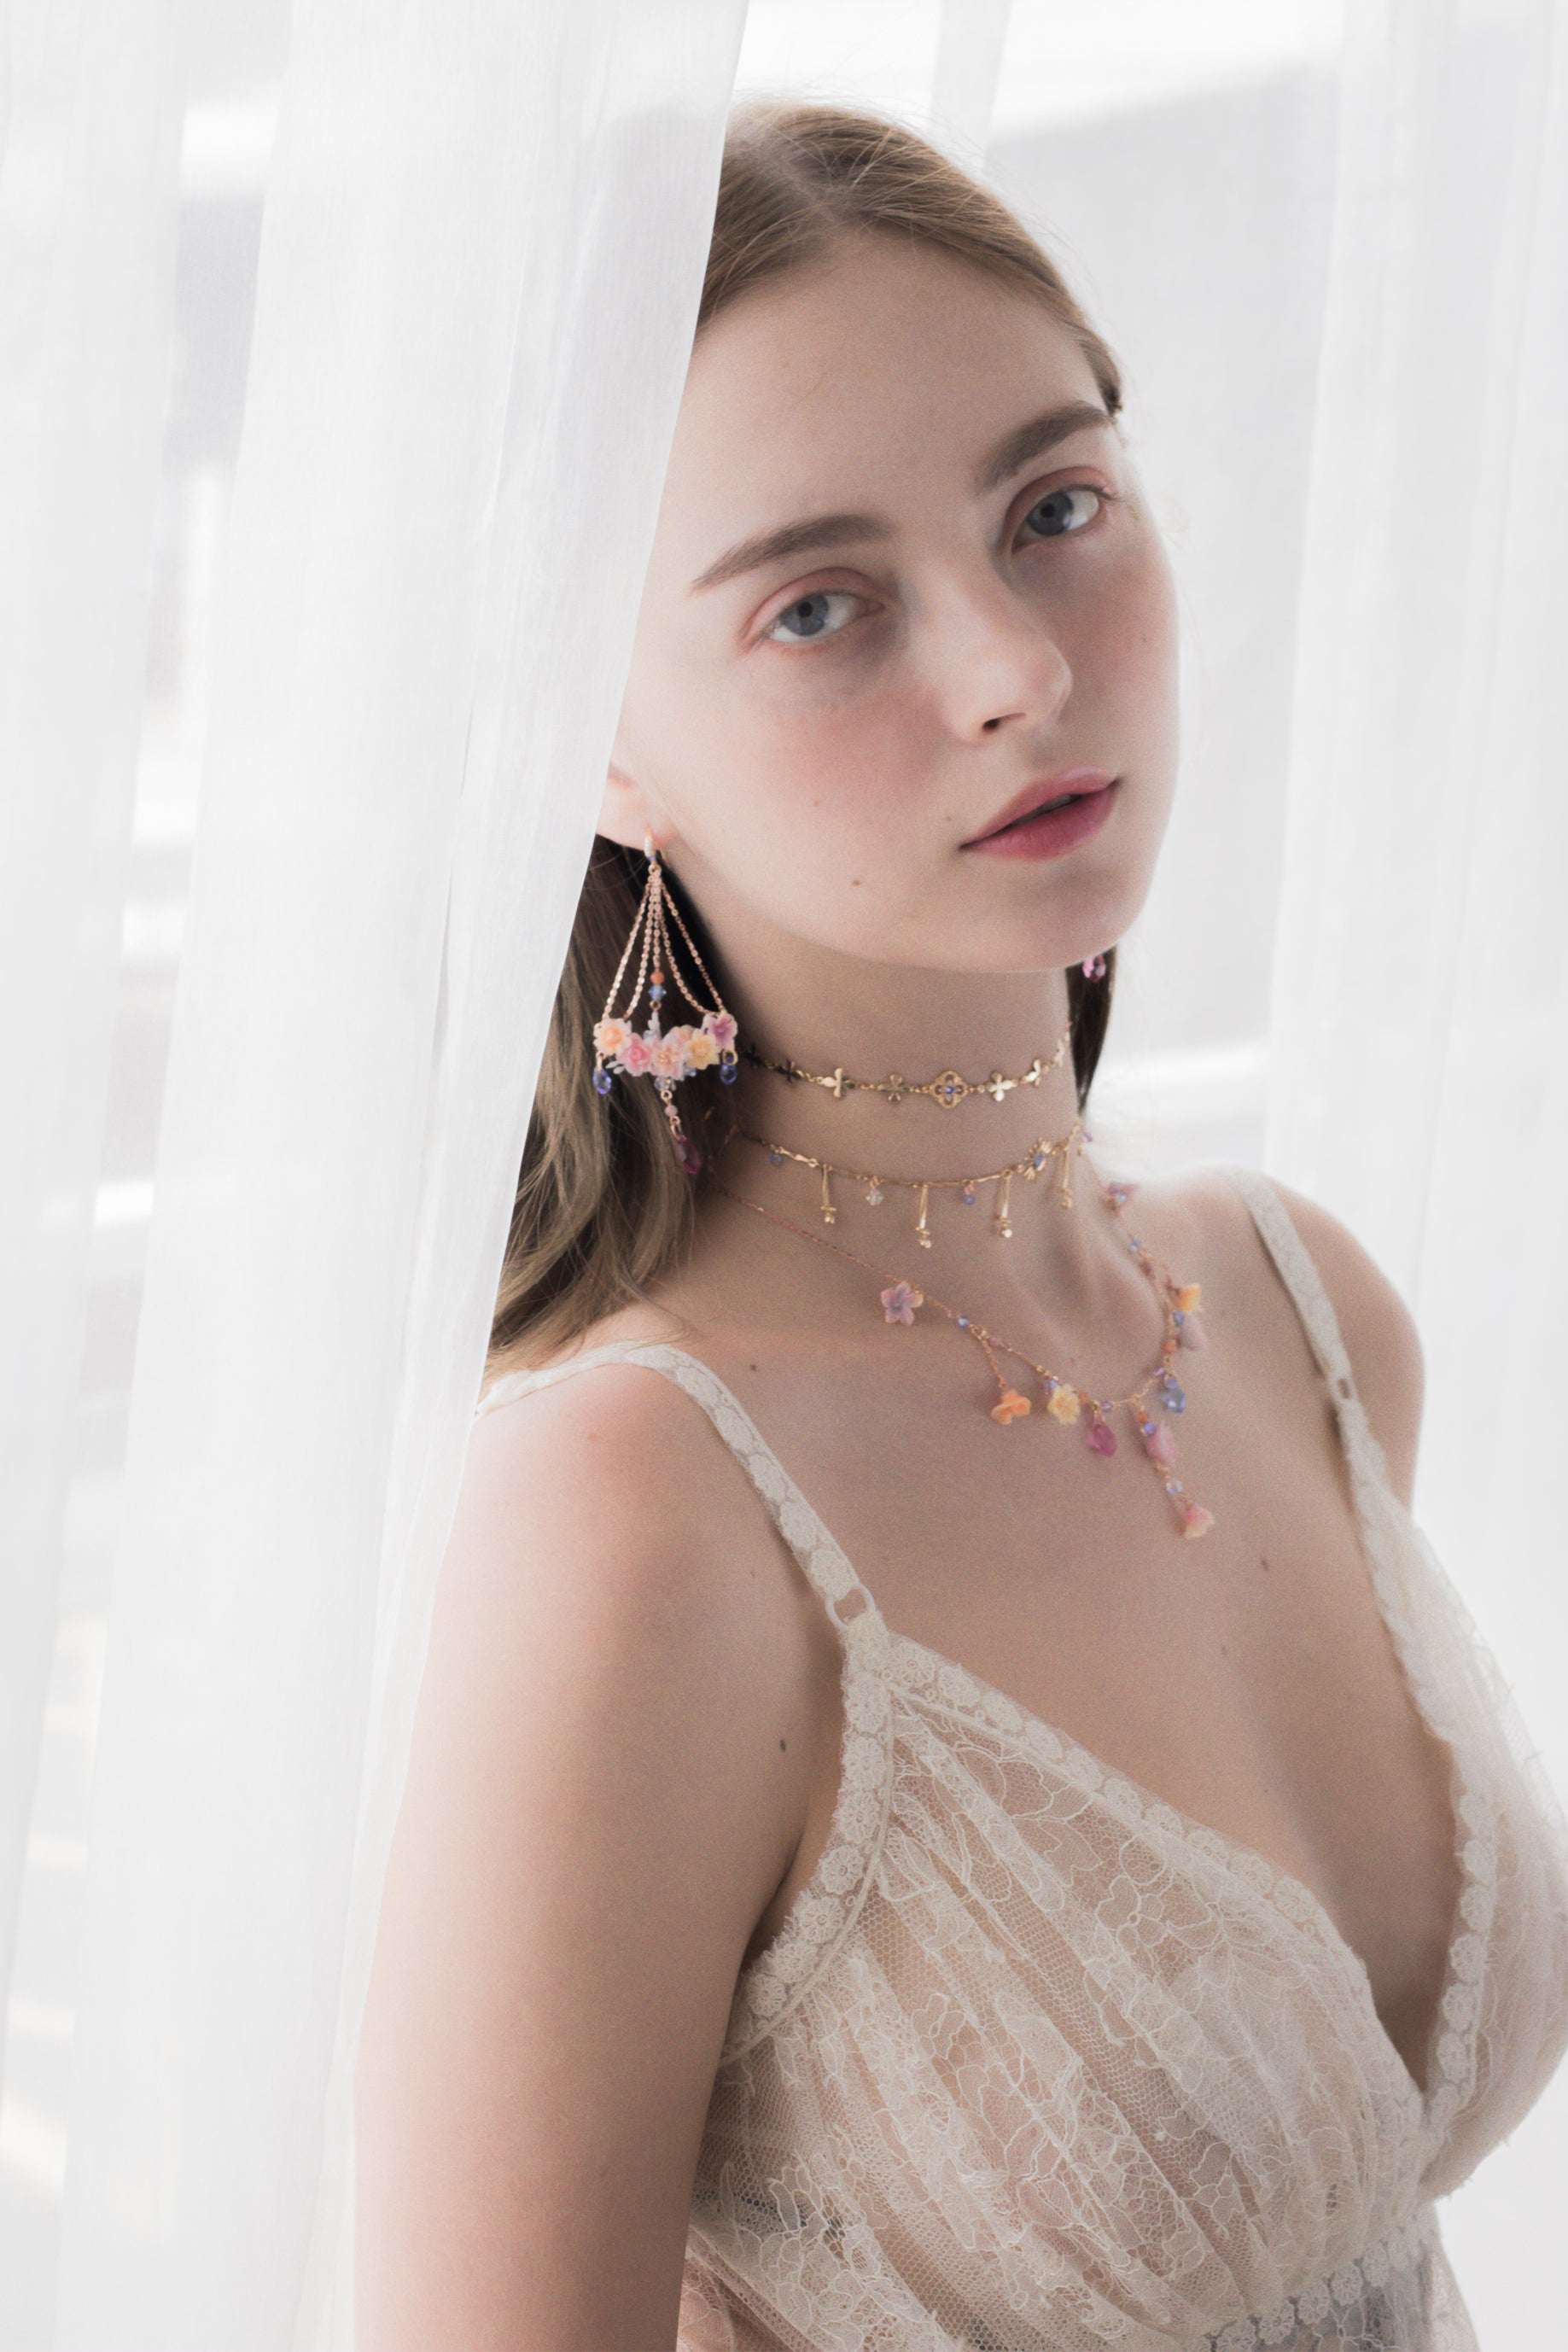 The Censors Rose-Gold plated 925 Sliver Swing Earrings